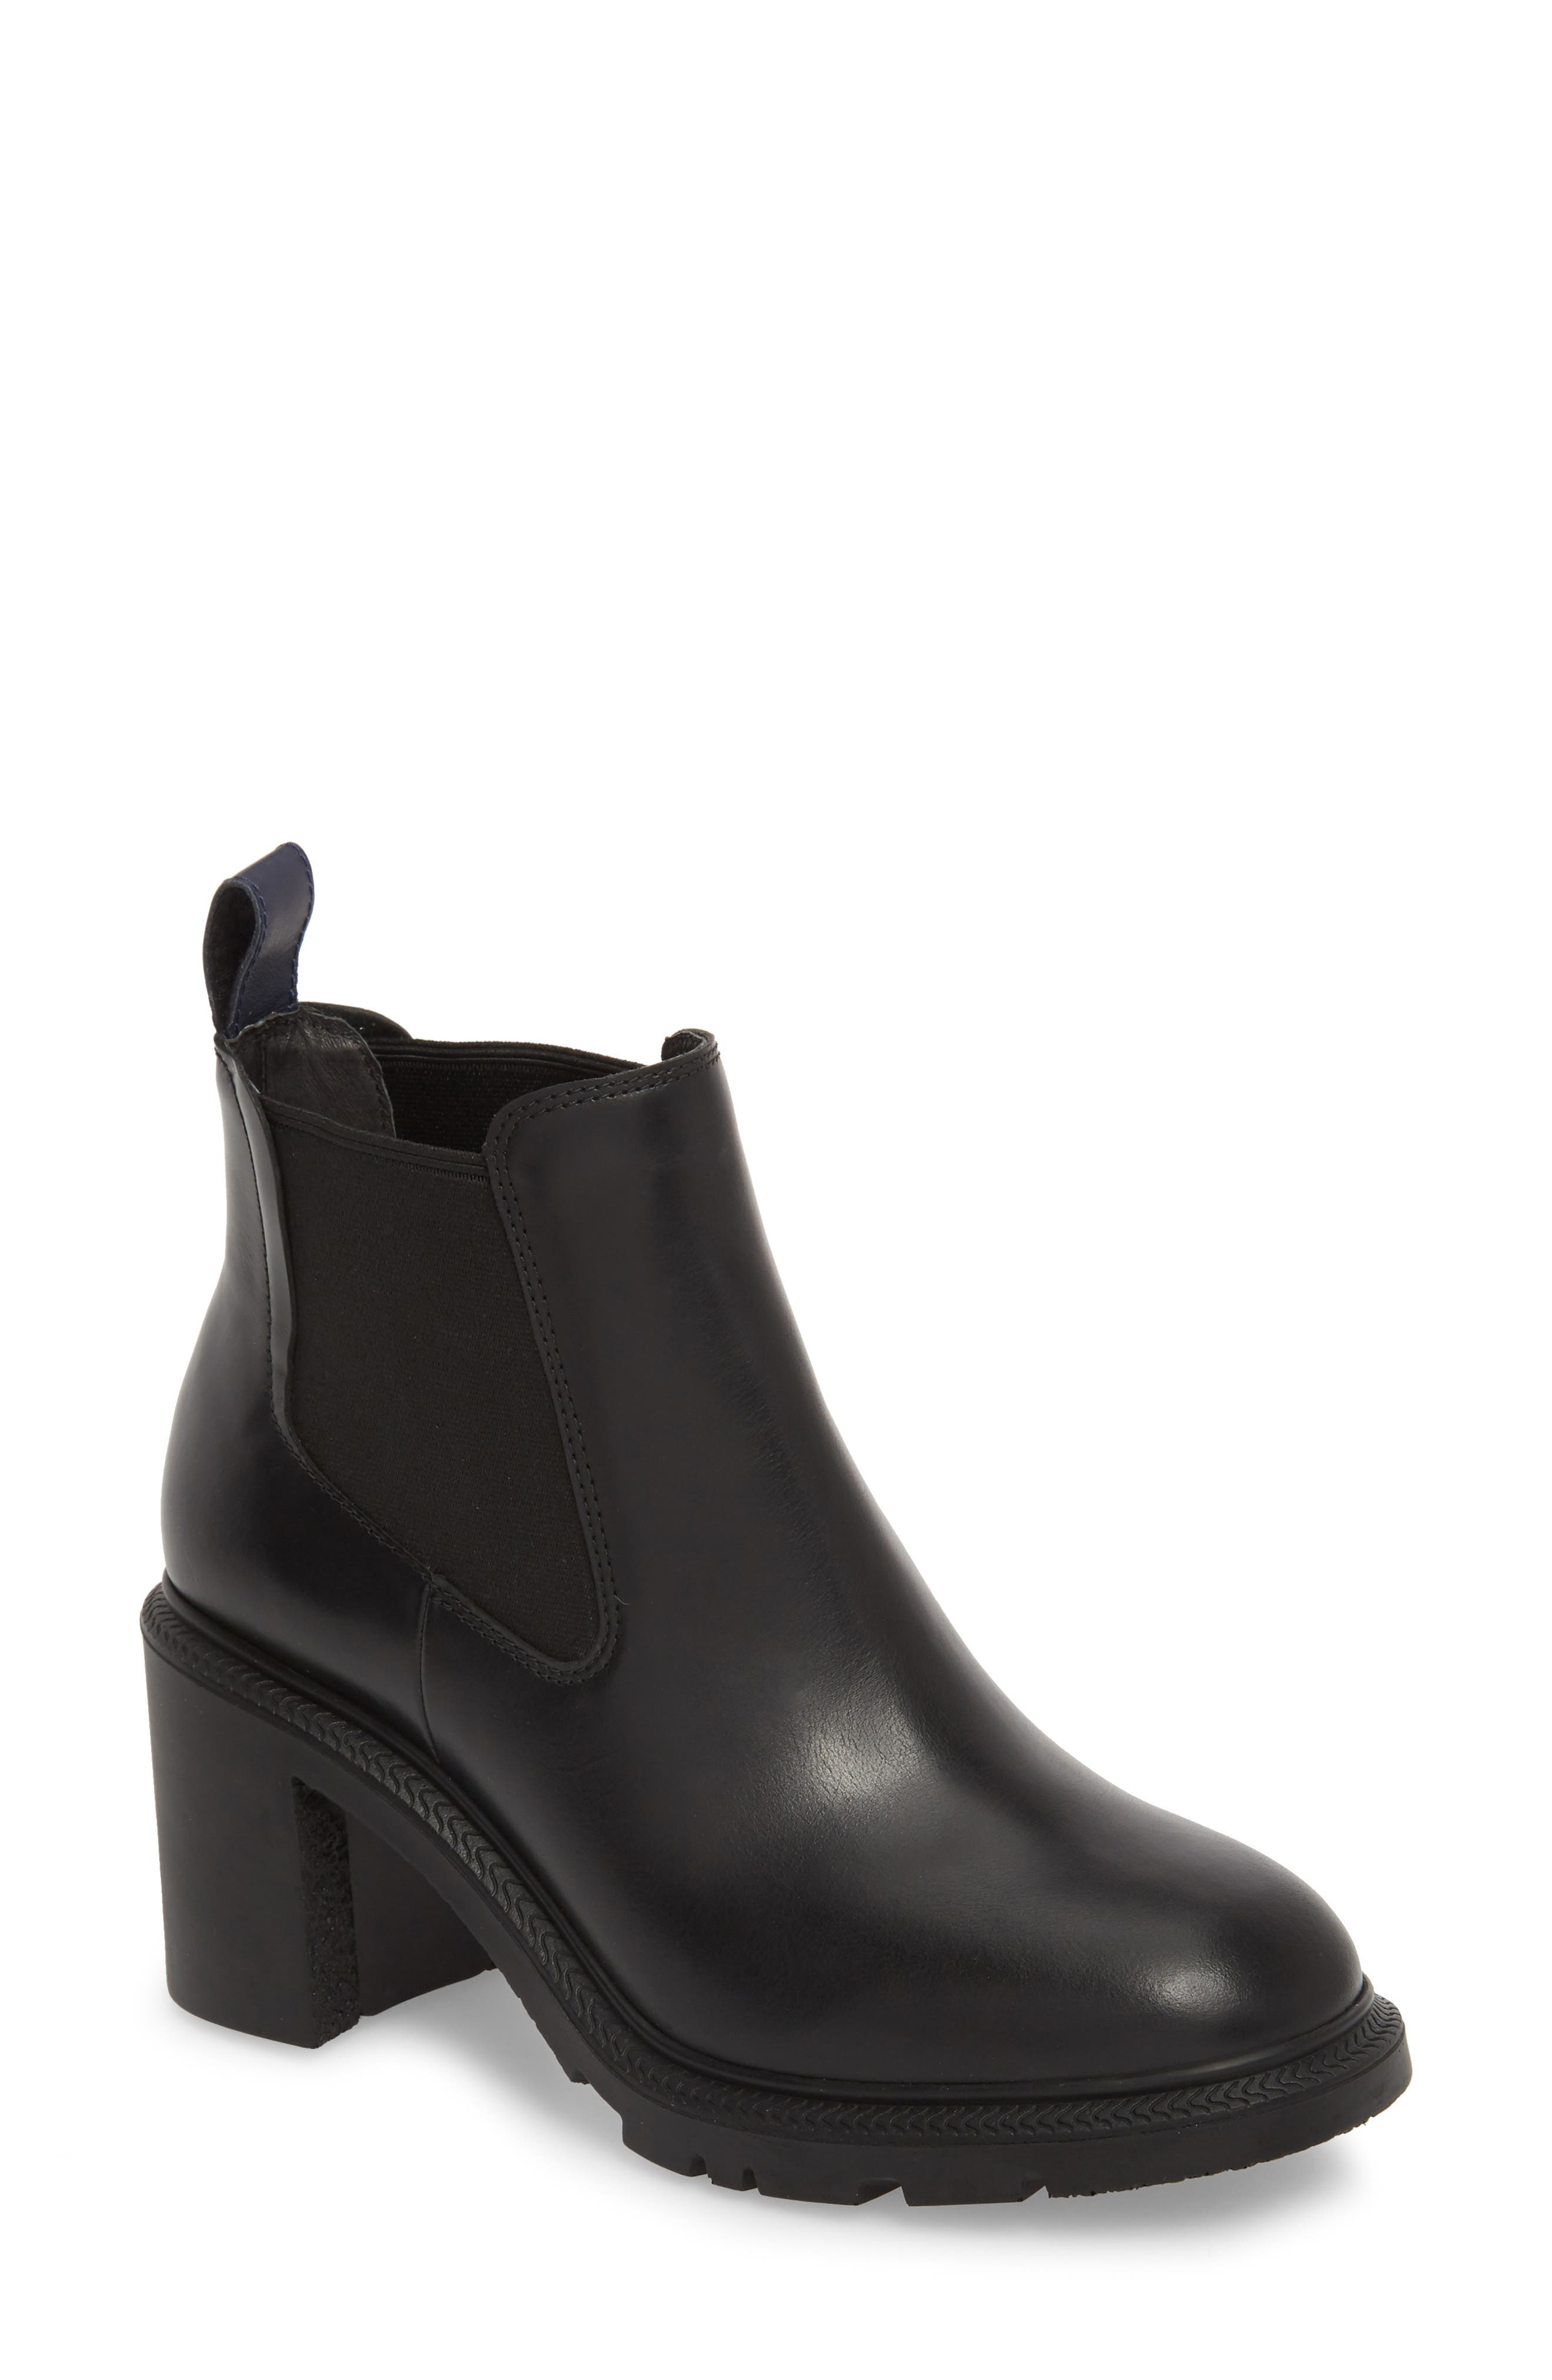 CAMPER,                             Whitnee Bootie,                             Main thumbnail 1, color,                             BLACK LEATHER/ BLACK